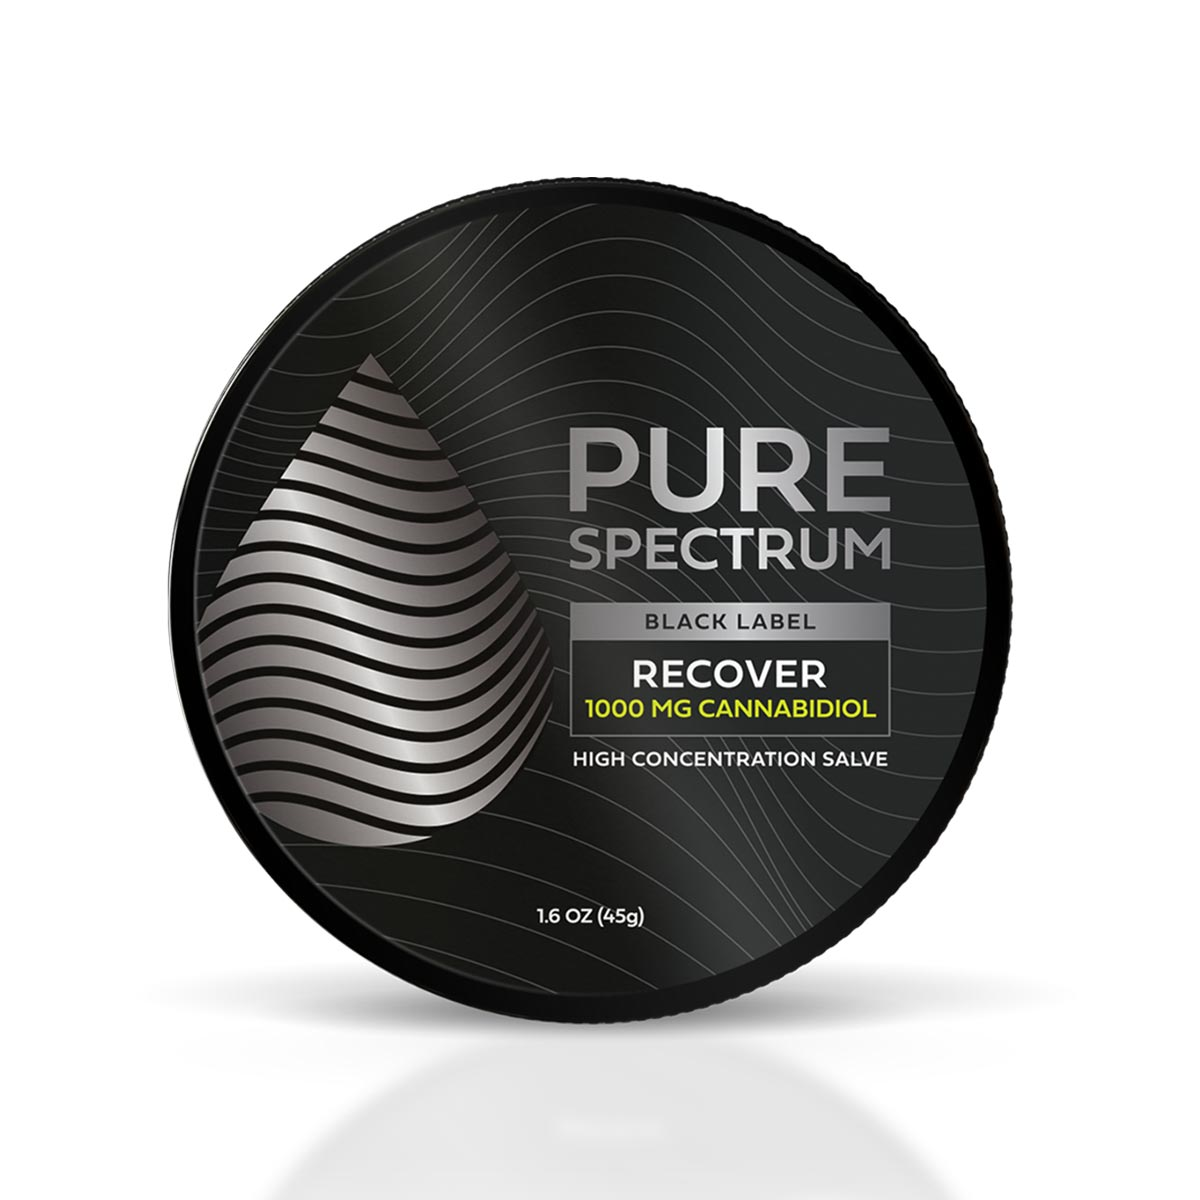 Pure Spectrum, Recover High Concentration Salve, 1,6oz, 1000mg of CBD